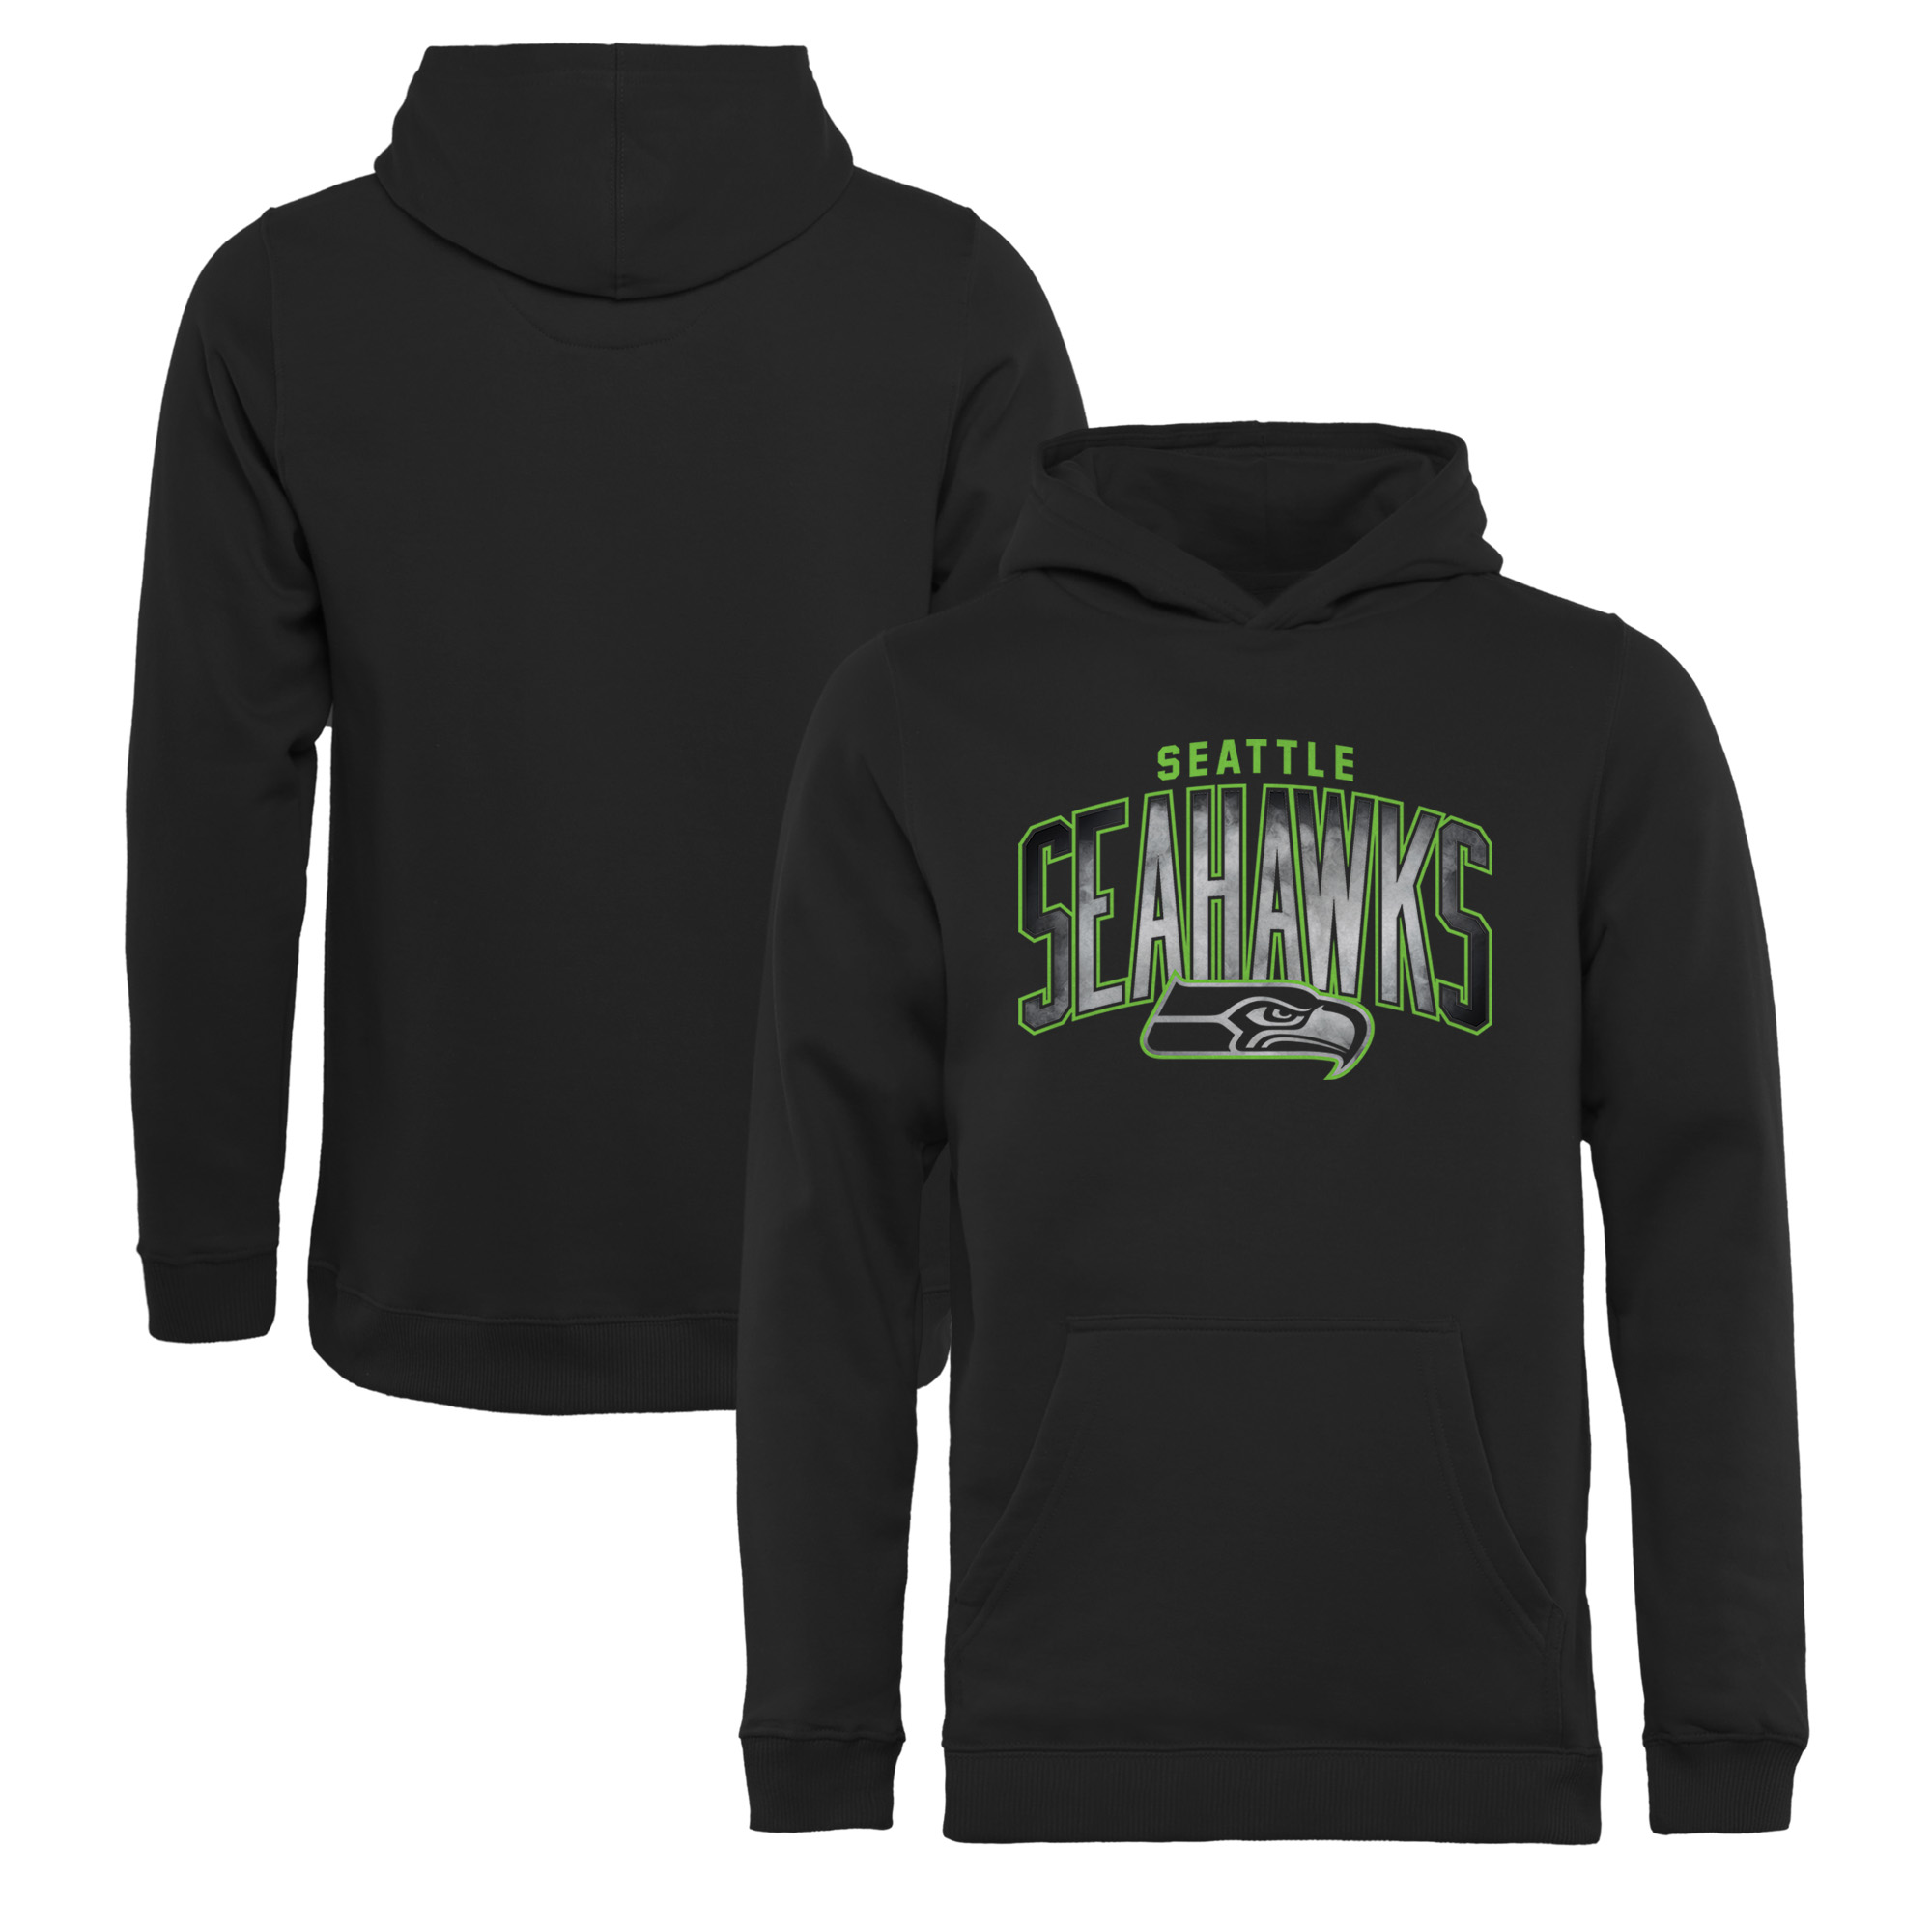 Seattle Seahawks NFL Pro Line by Fanatics Branded Youth Arch Smoke Pullover Hoodie - Black